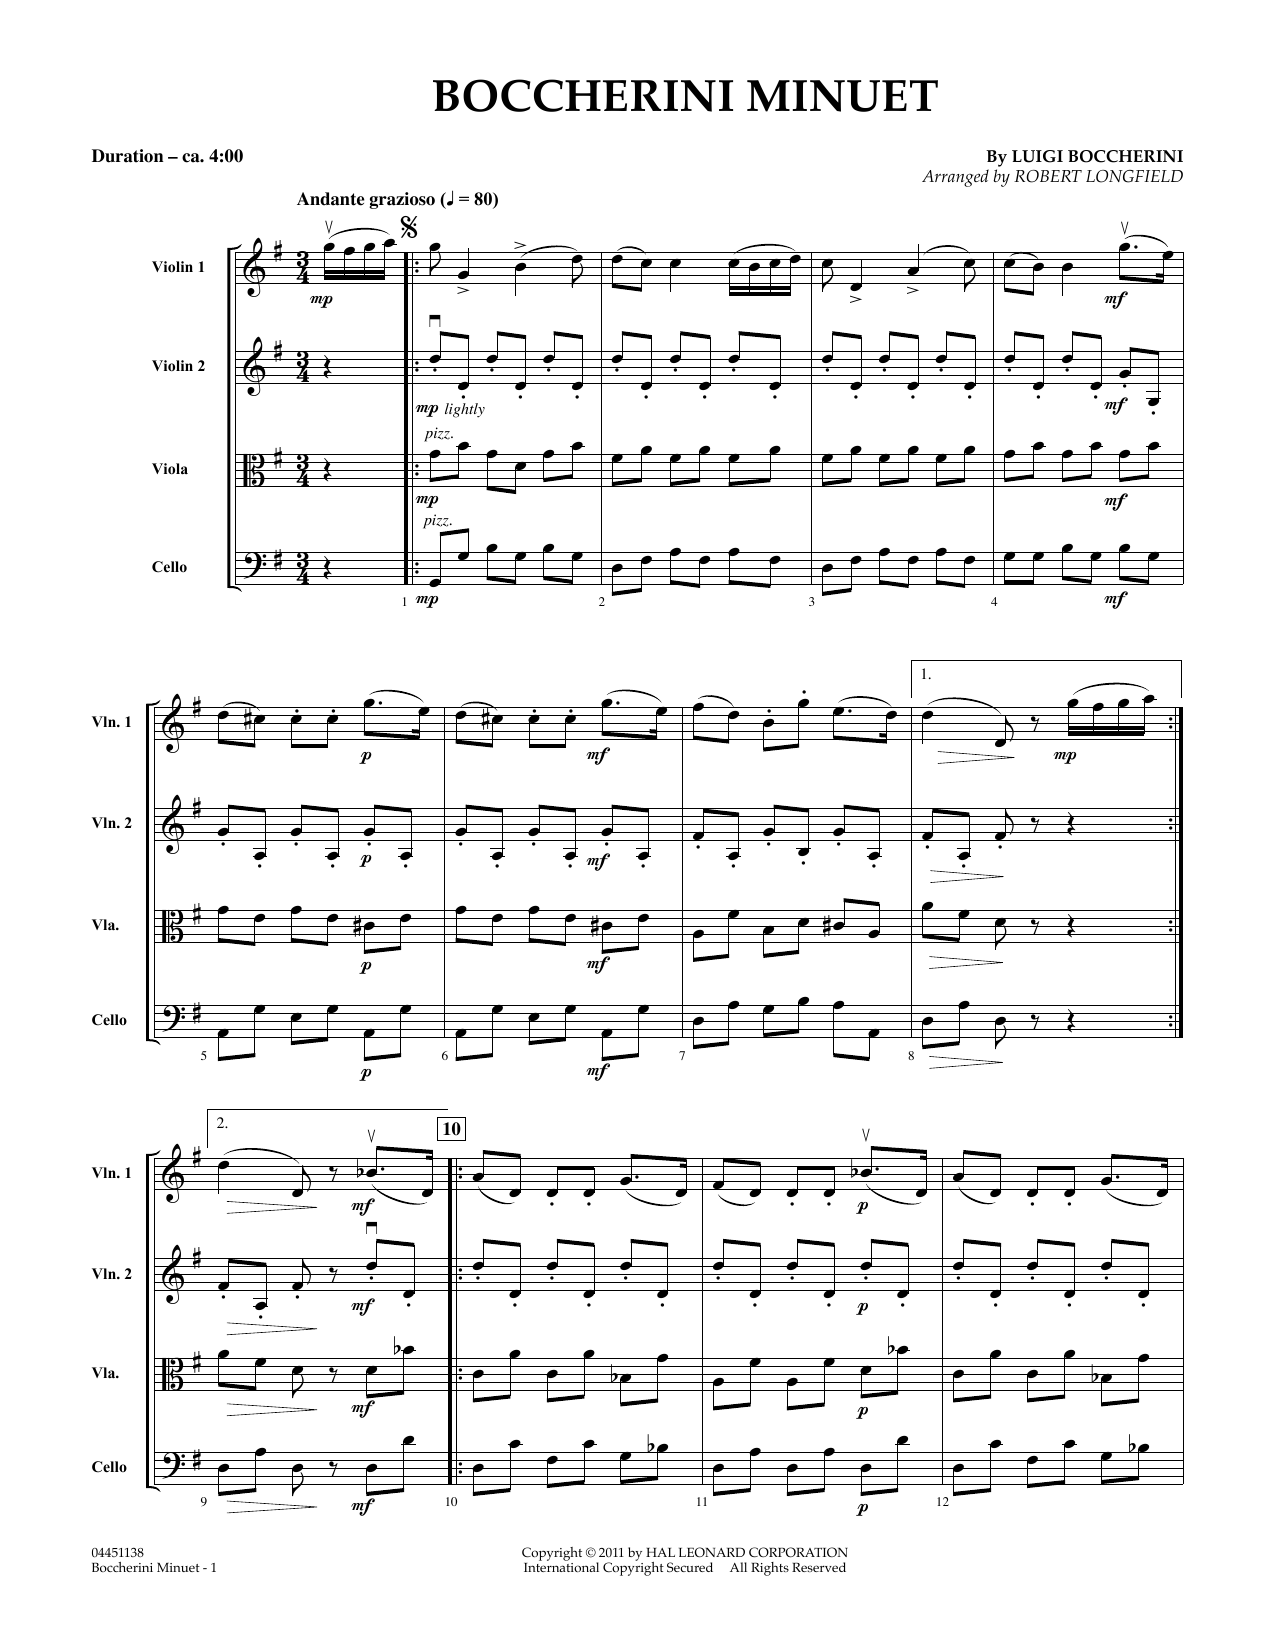 Boccherini Minuet (COMPLETE) sheet music for orchestra (Strings) by Robert Longfield and Luigi Boccherini. Score Image Preview.